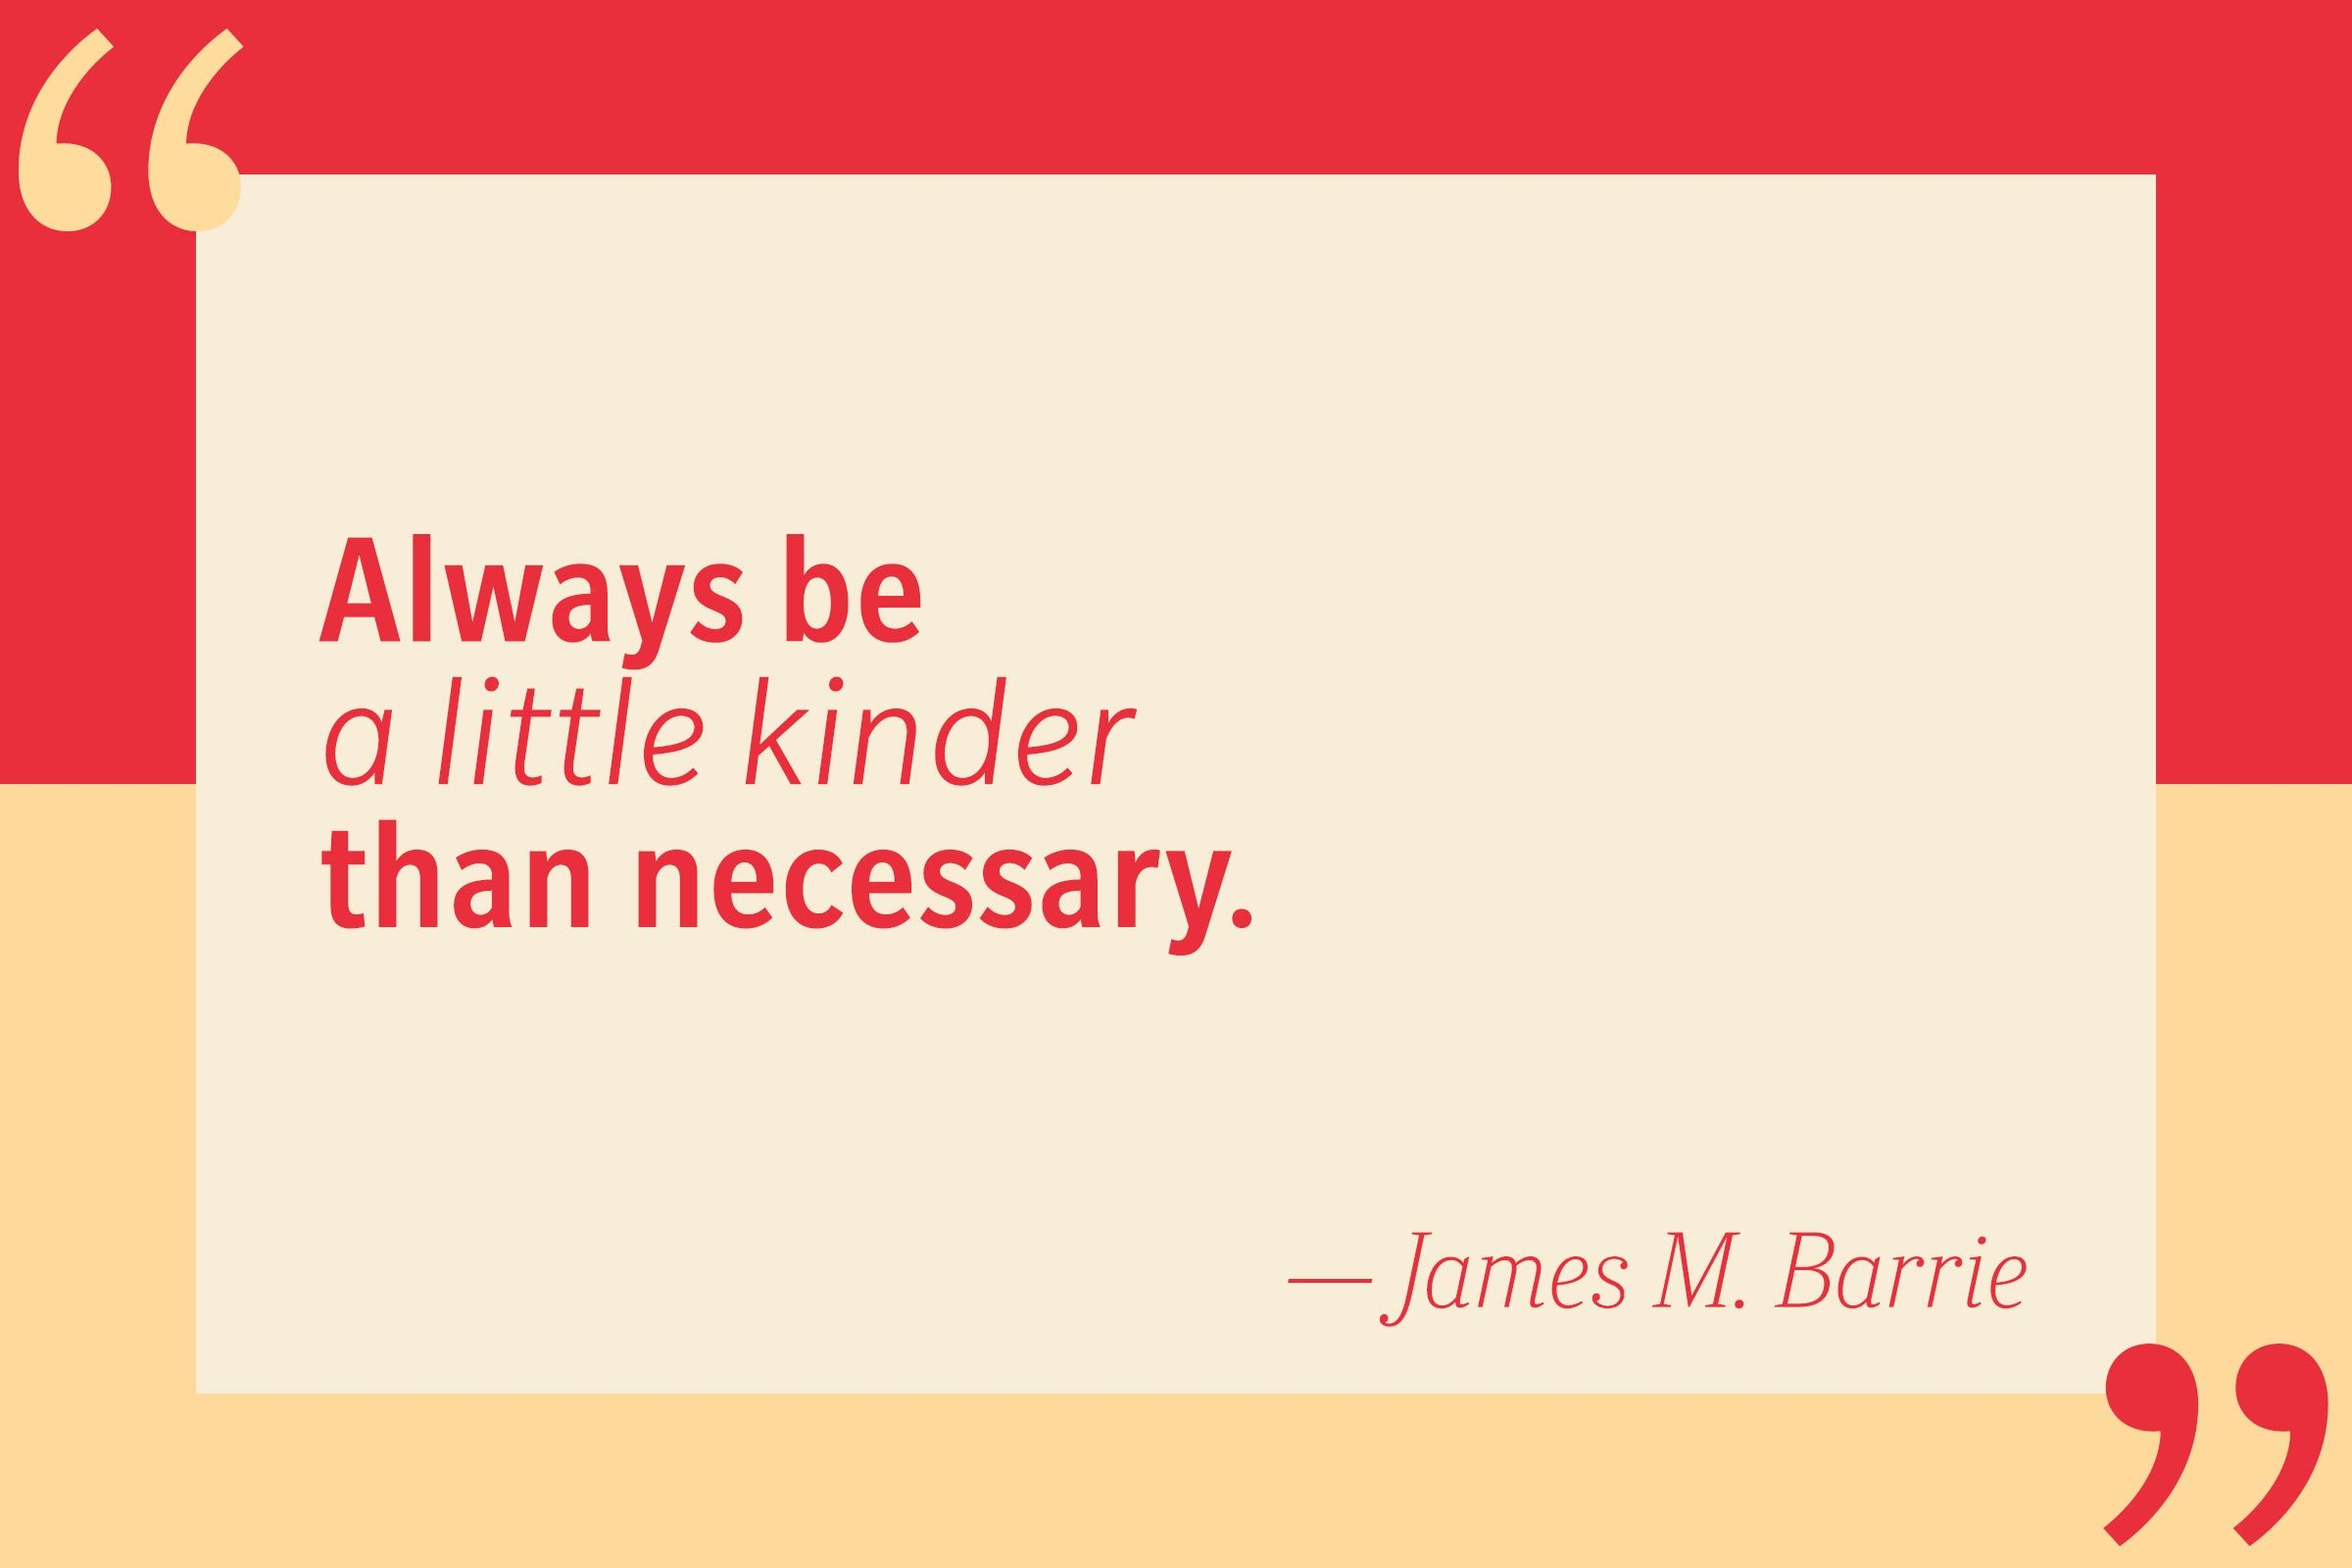 Always be a little kinder than necessary. — James M. Barrie